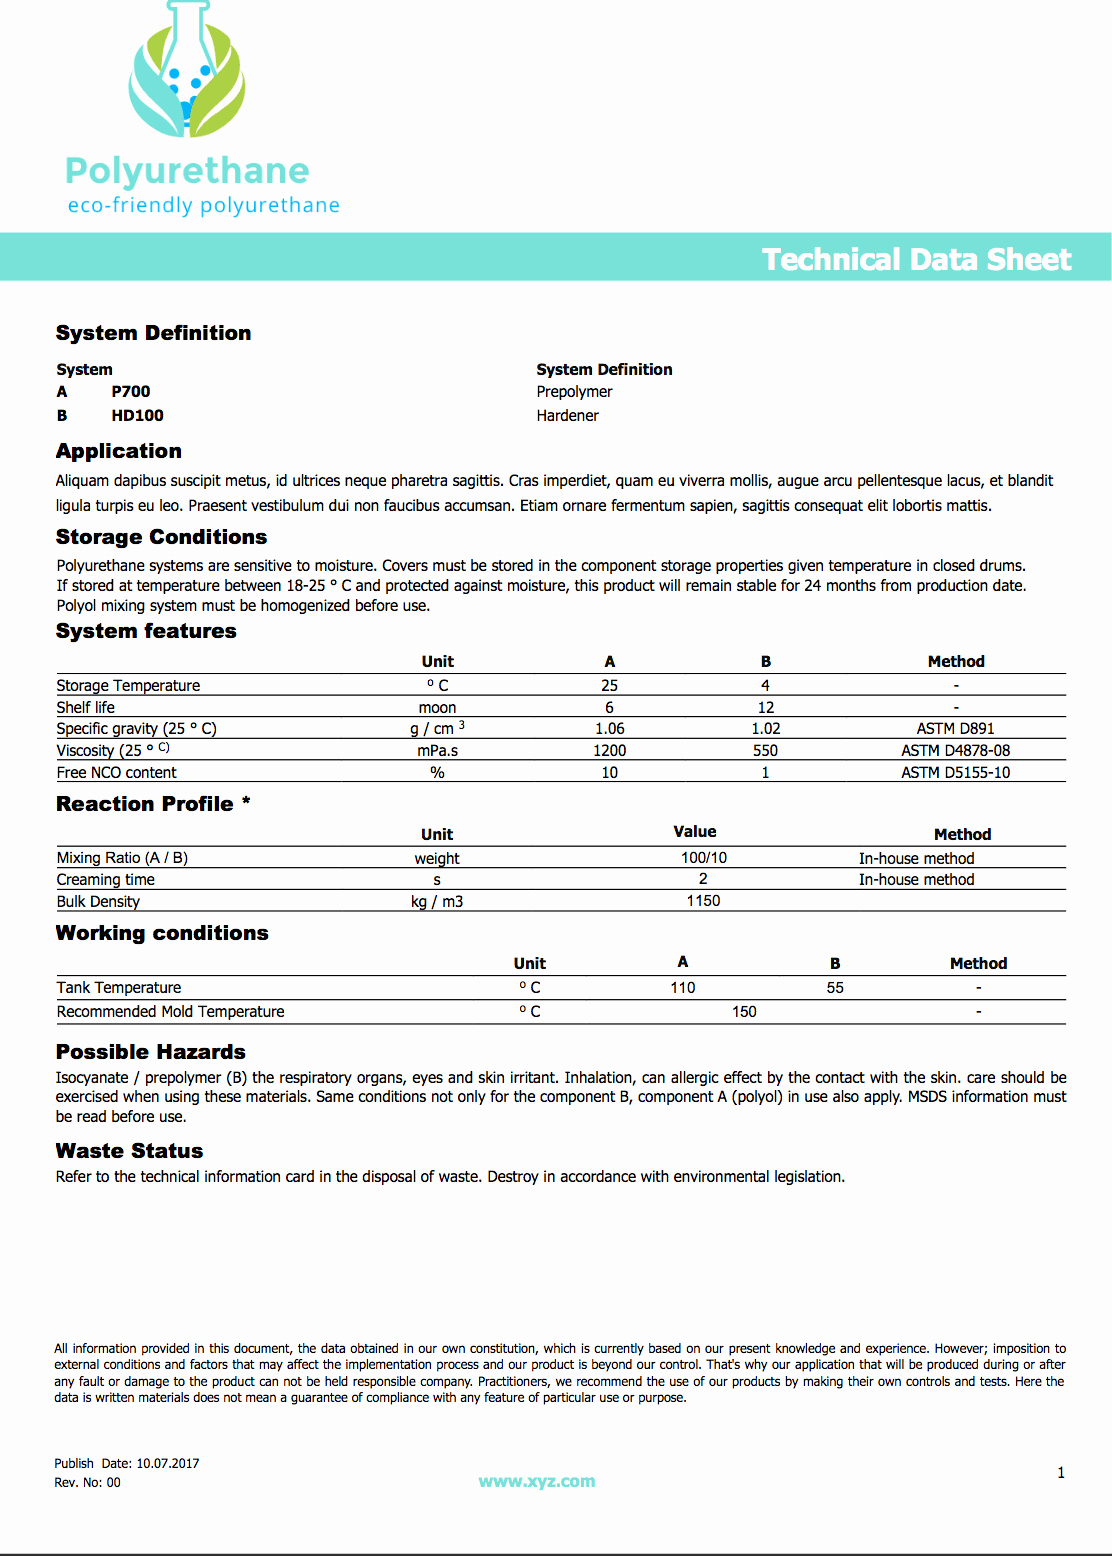 Free Data Sheet Template New Free Data Sheet Templates for Polyurethane Tdsmaker